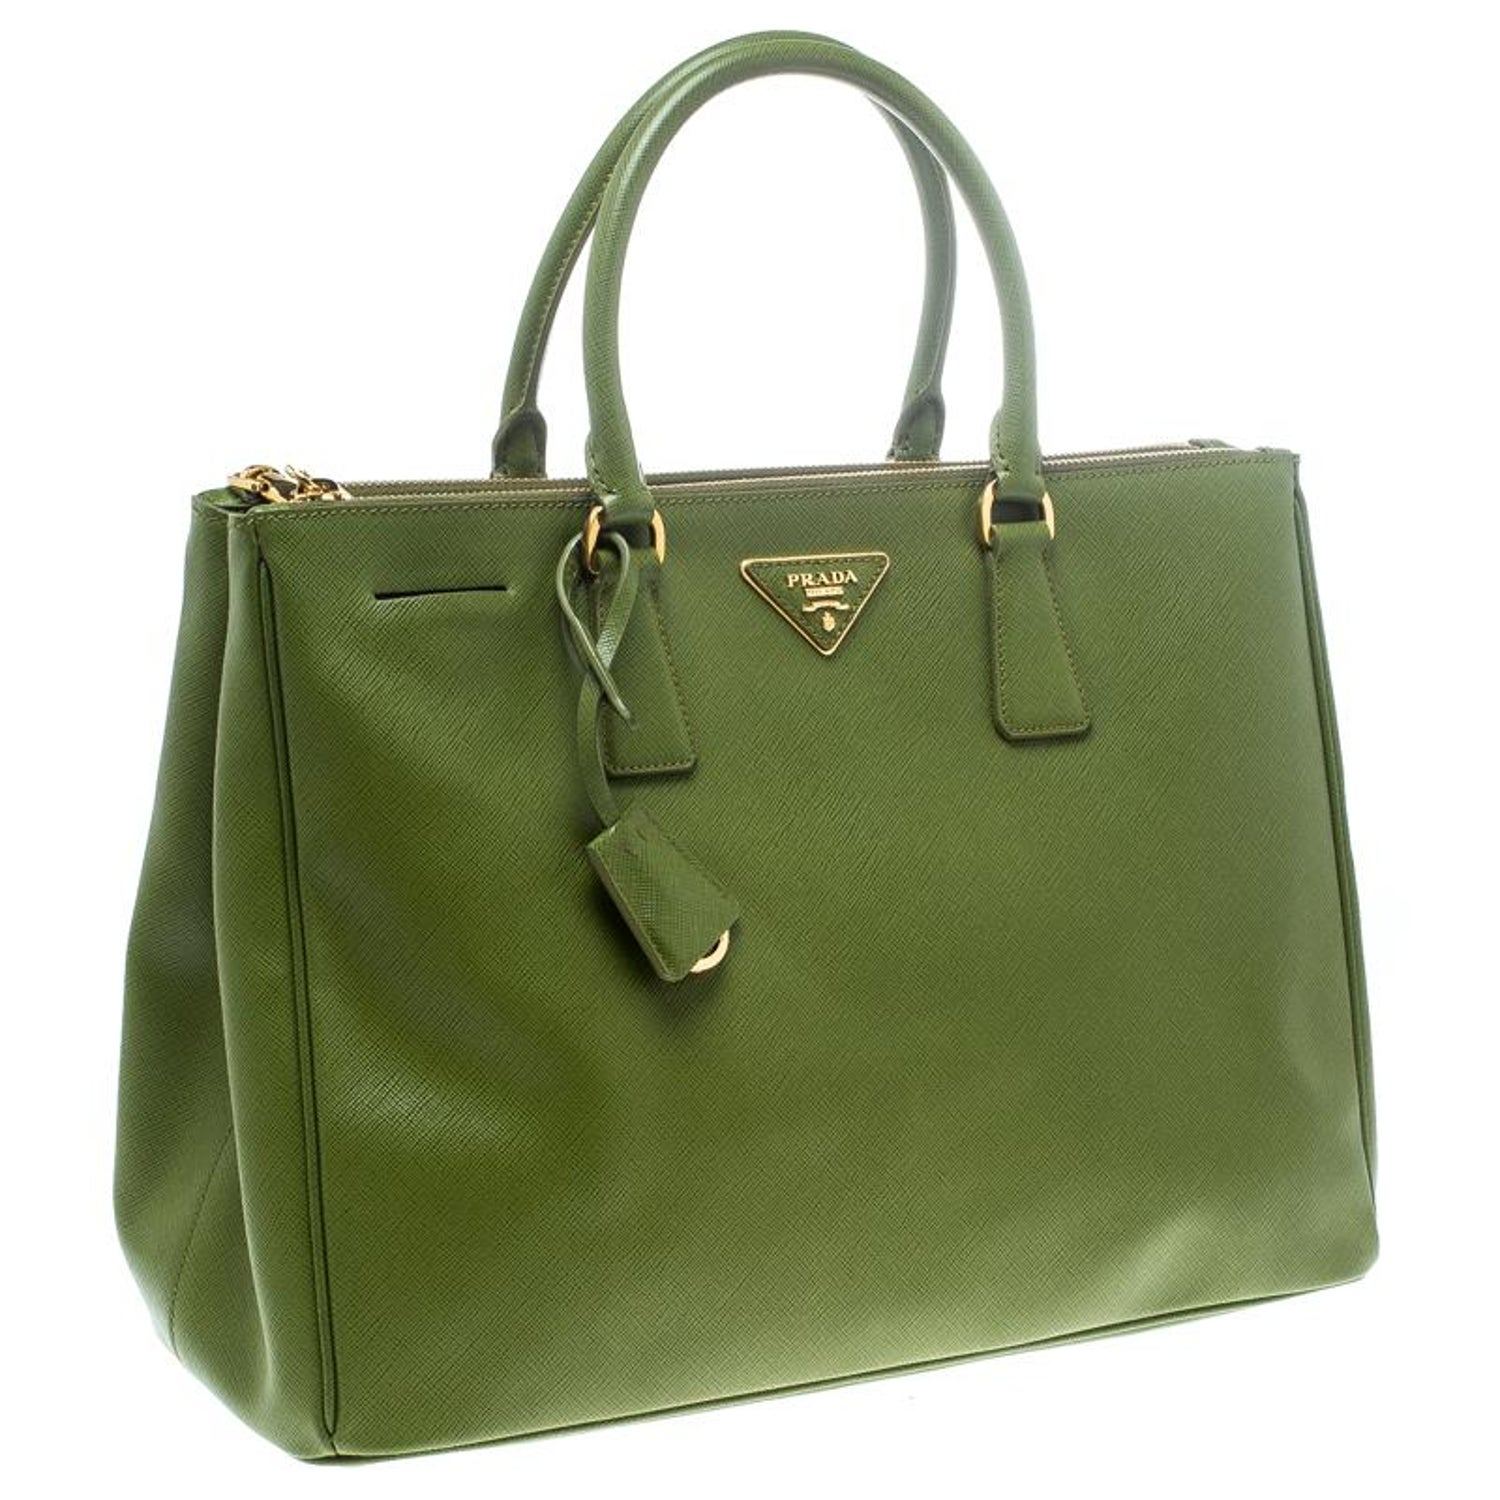 92382014af26bc Prada Green Saffiano Lux Leather Large Double Zip Tote For Sale at 1stdibs